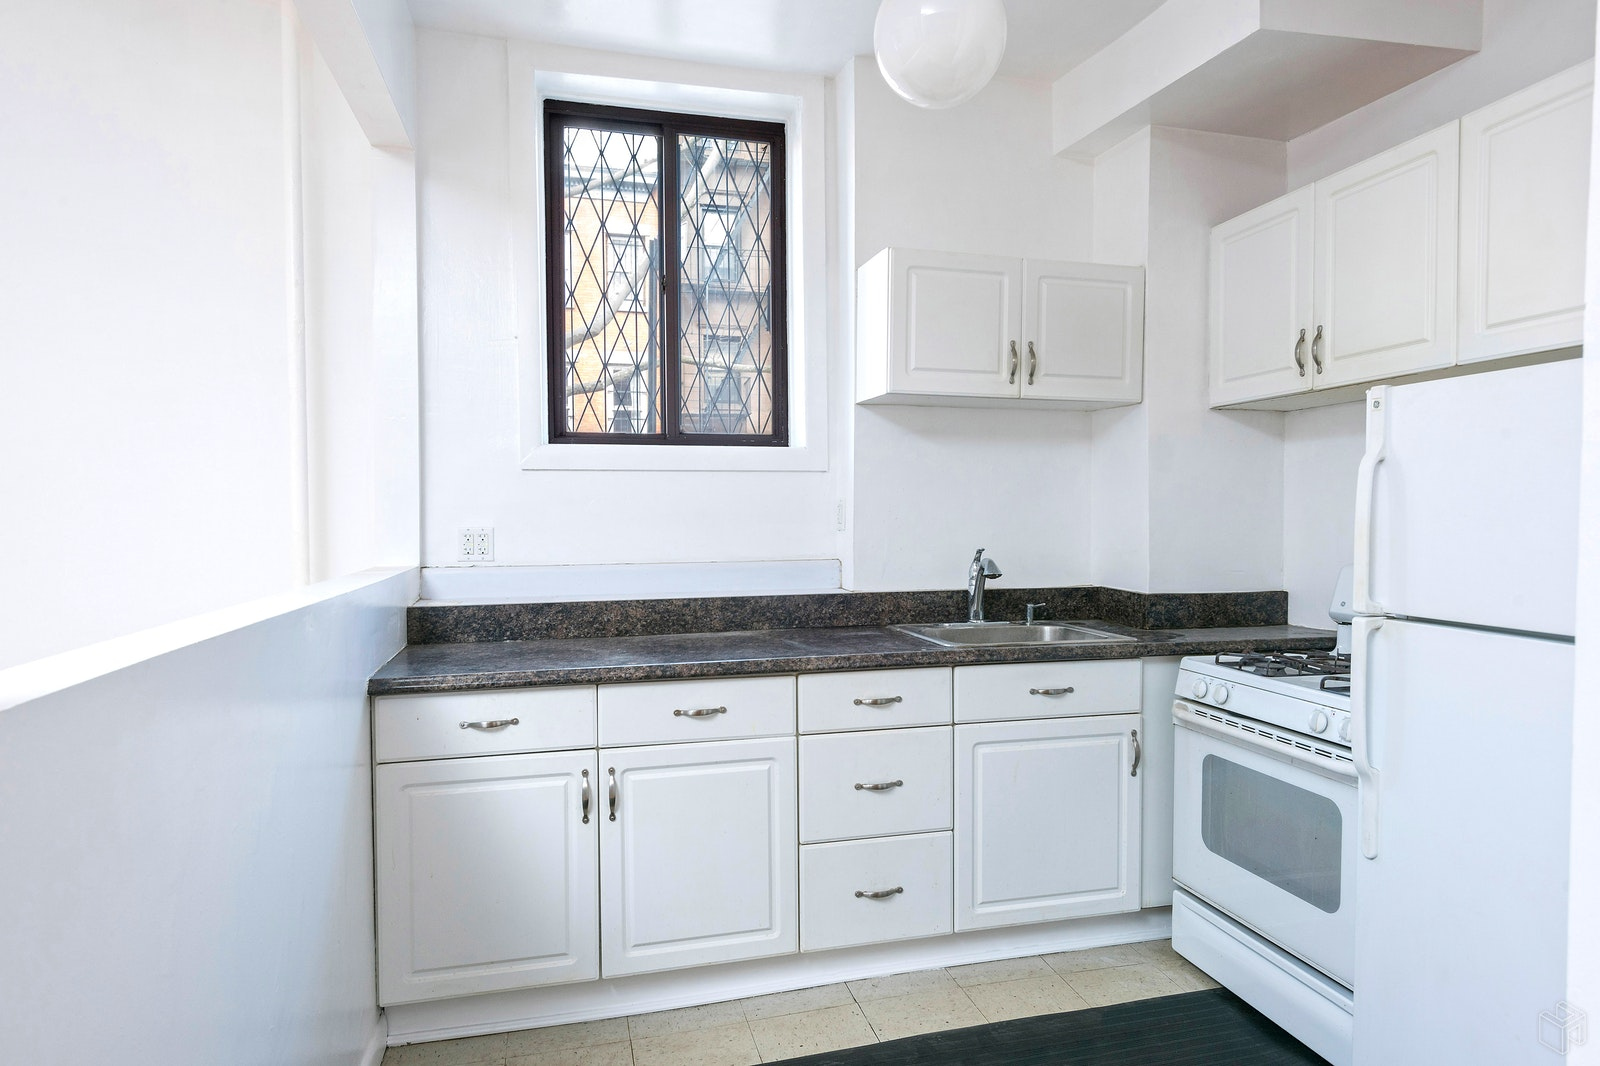 110 Hoyt Street 1, Boerum Hill, Brooklyn, NY, 11217, $875,000, Sold Property, Halstead Real Estate, Photo 3